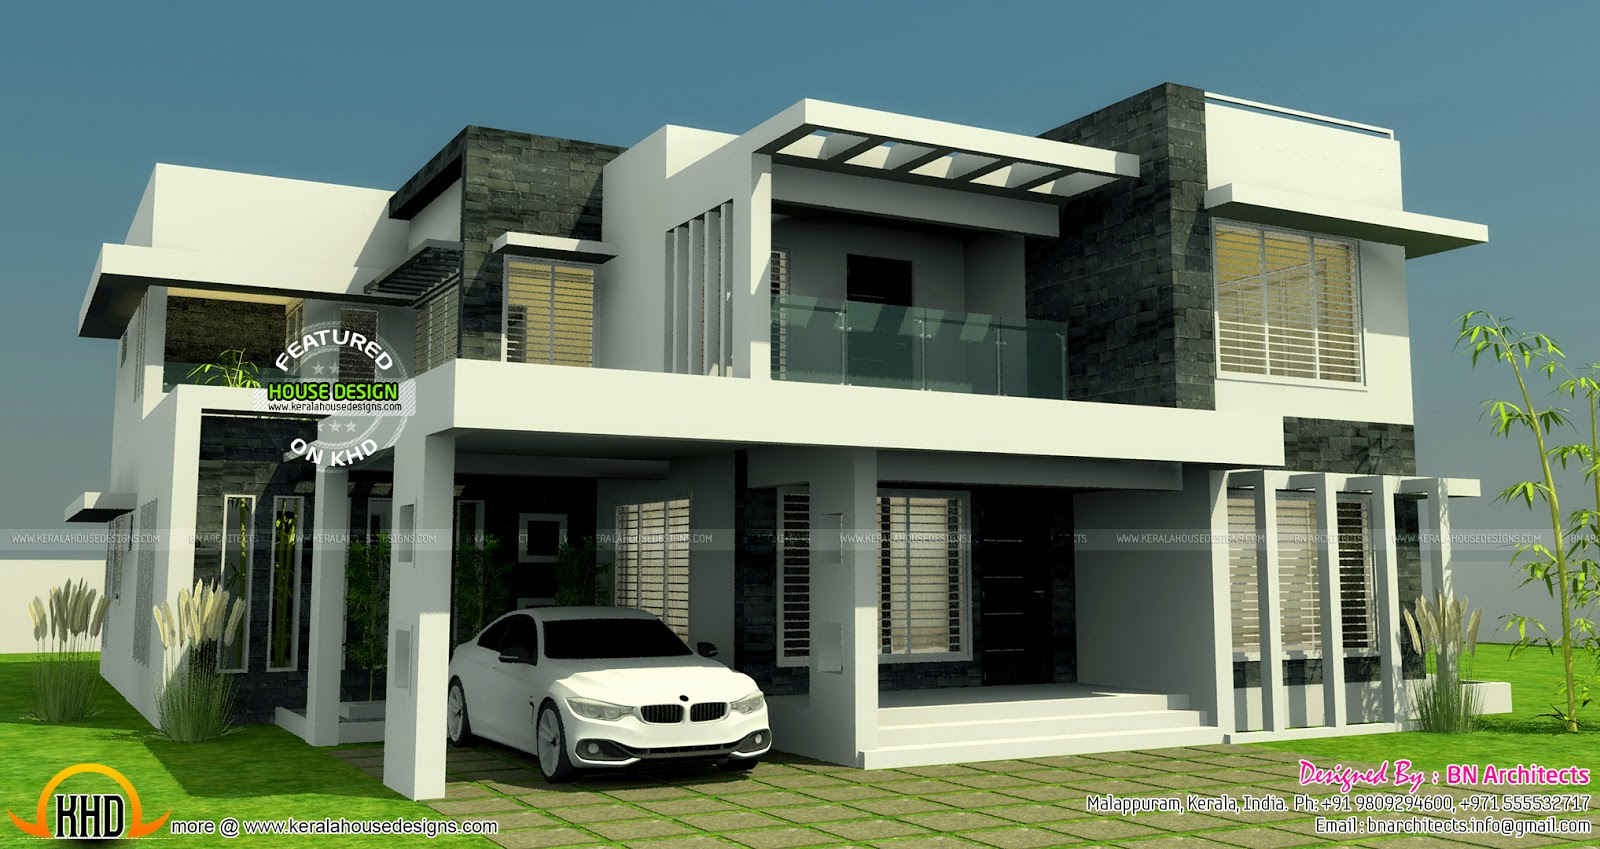 Stylish 4 bedroom contemporary kerala home design with free plan